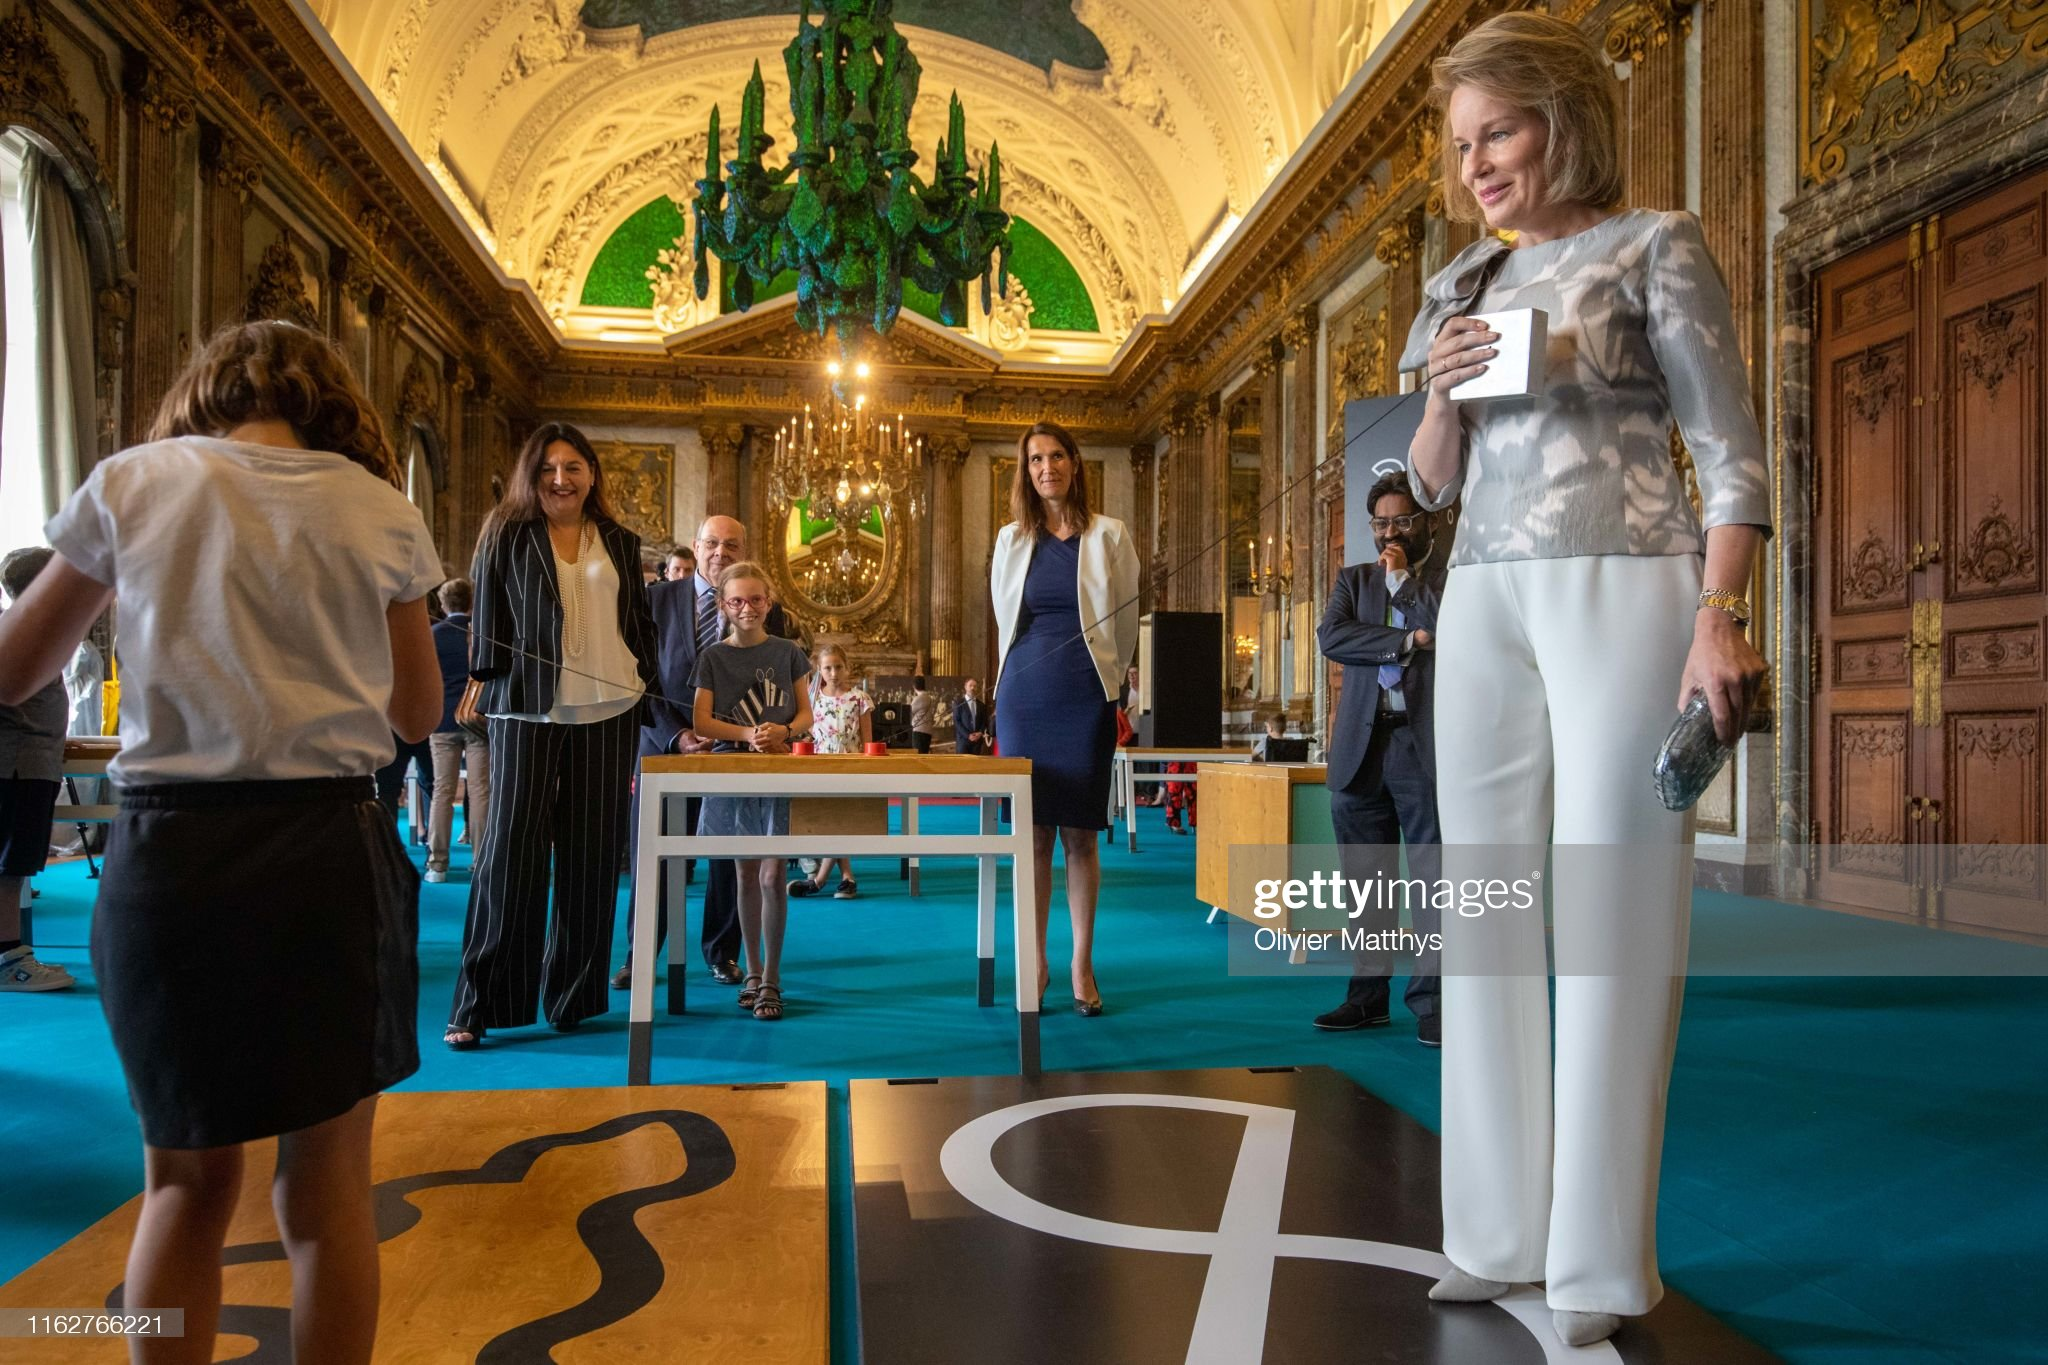 CASA REAL BELGA - Página 54 Queen-mathilde-of-belgium-attends-the-technopolis-section-of-the-at-picture-id1162766221?s=2048x2048